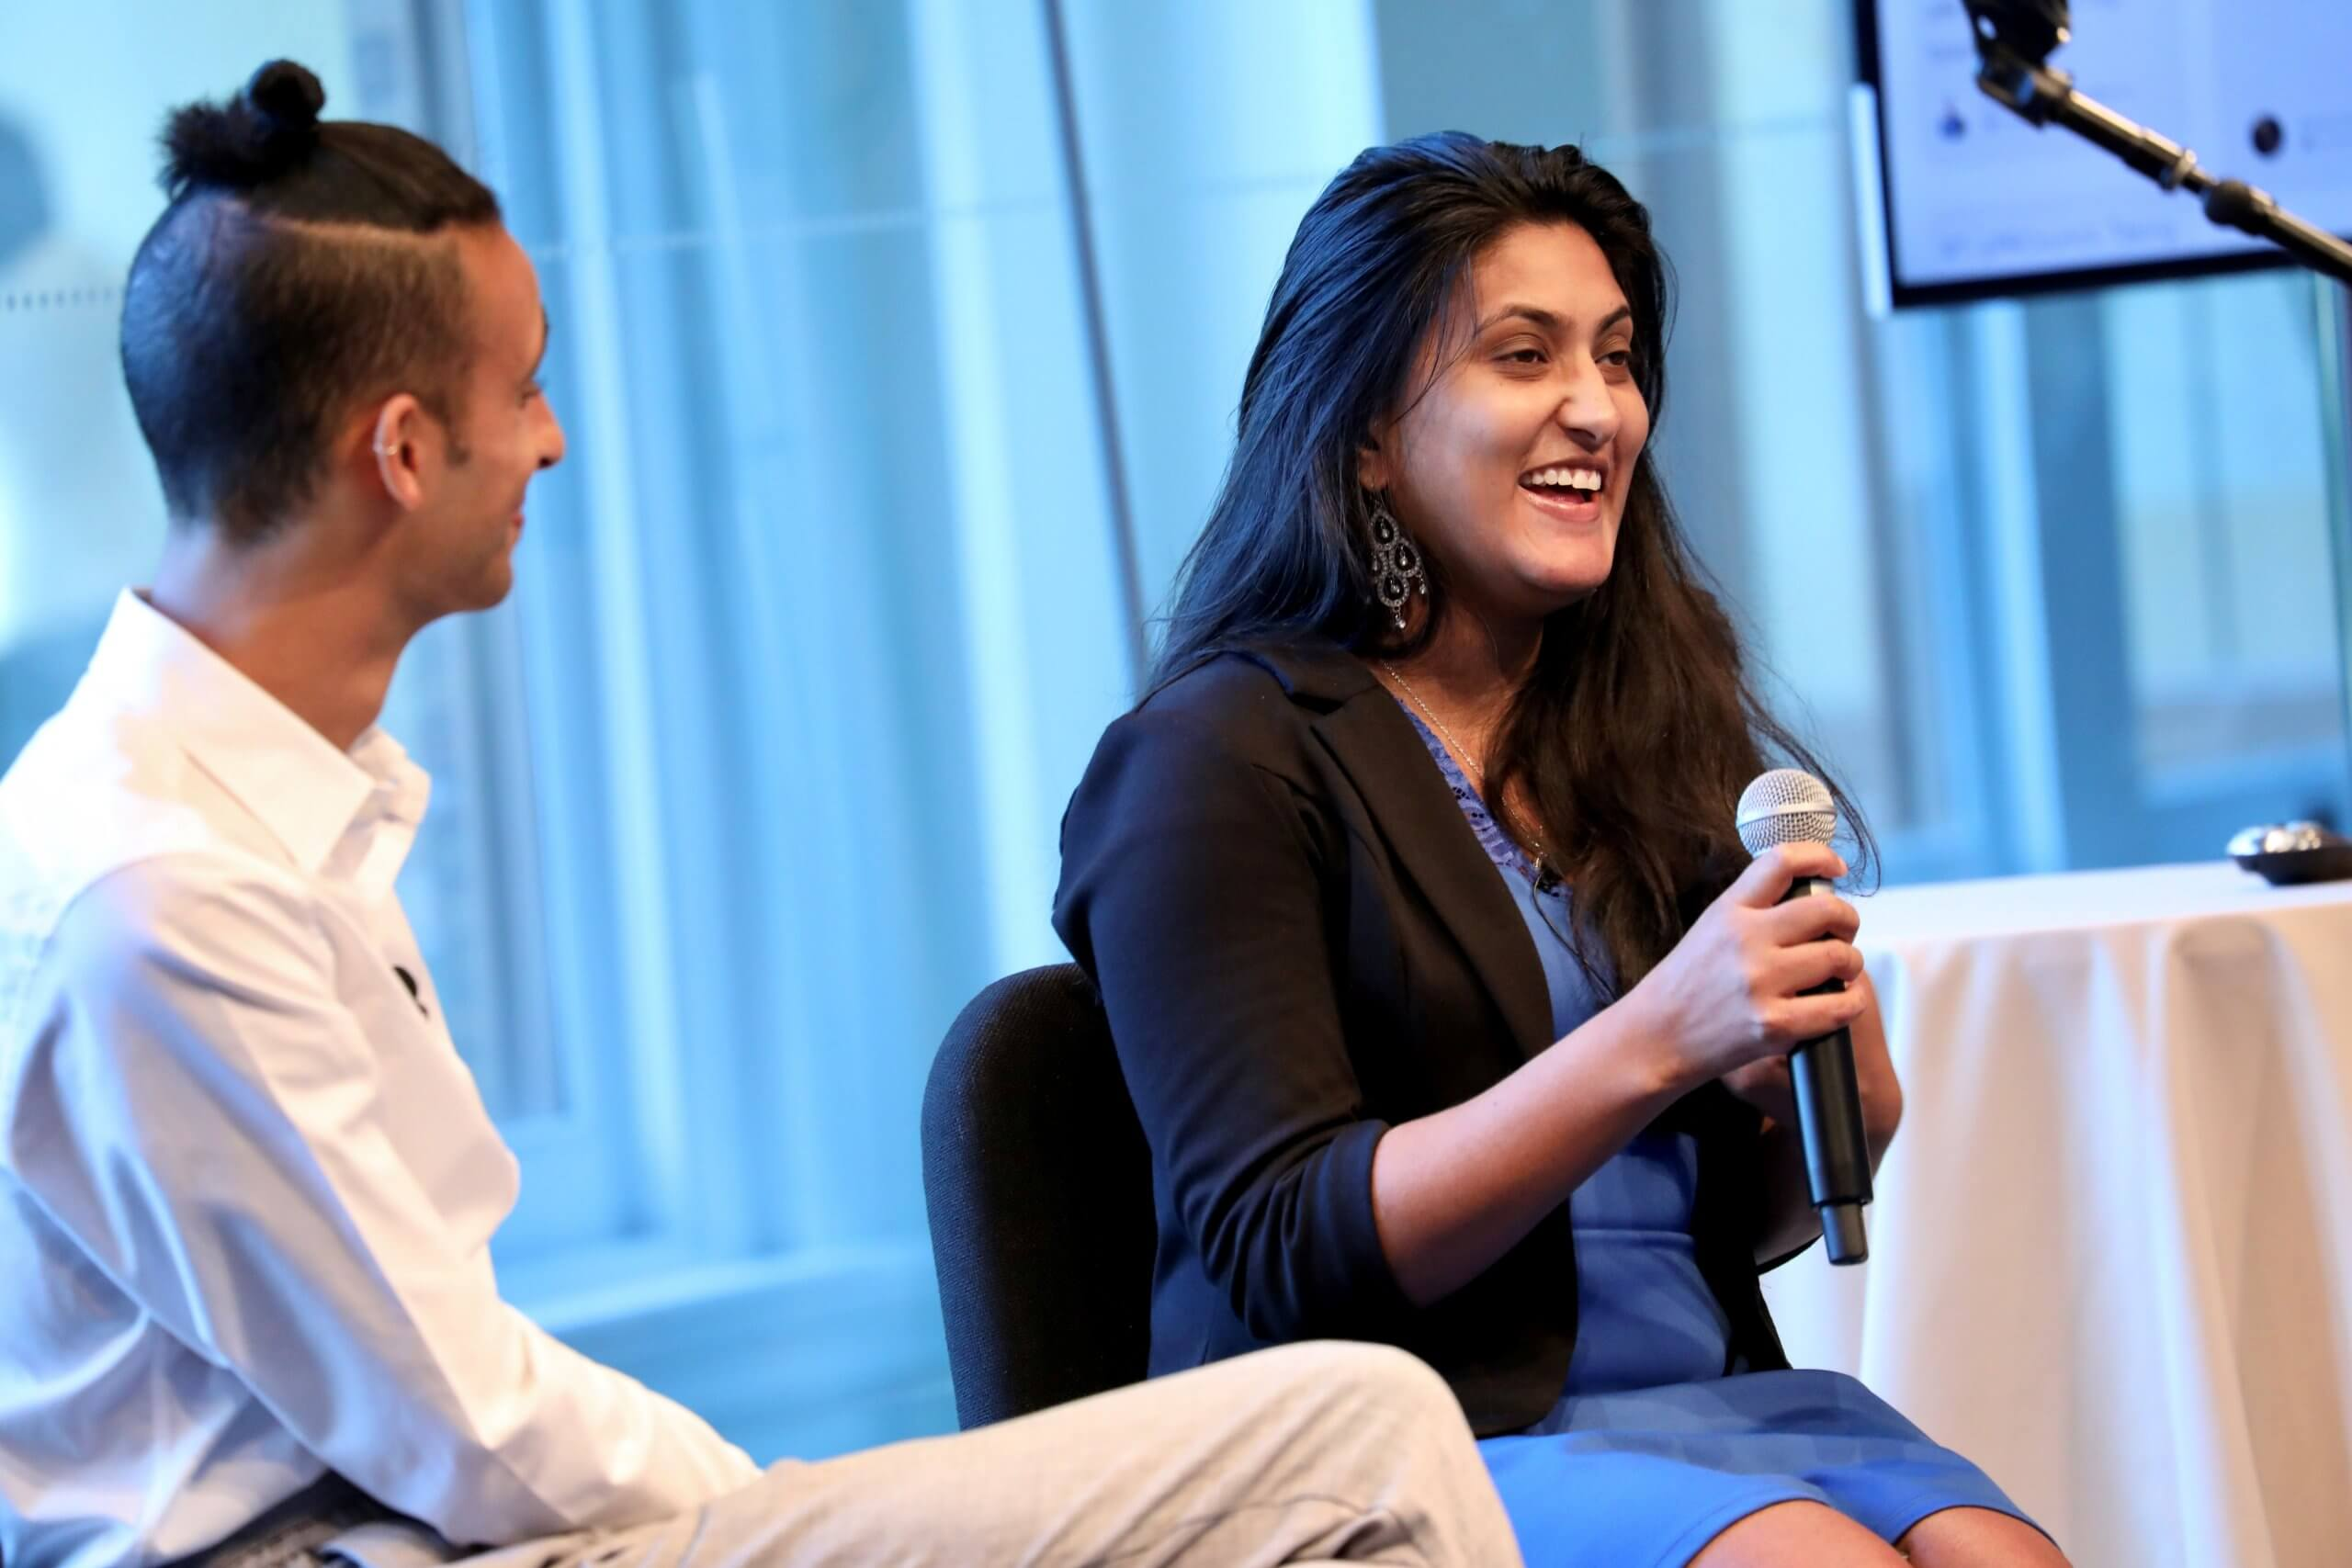 A man and woman talking at a conference. Sena Pottackal is the woman talking on the right hand side. She is holding a microphone.